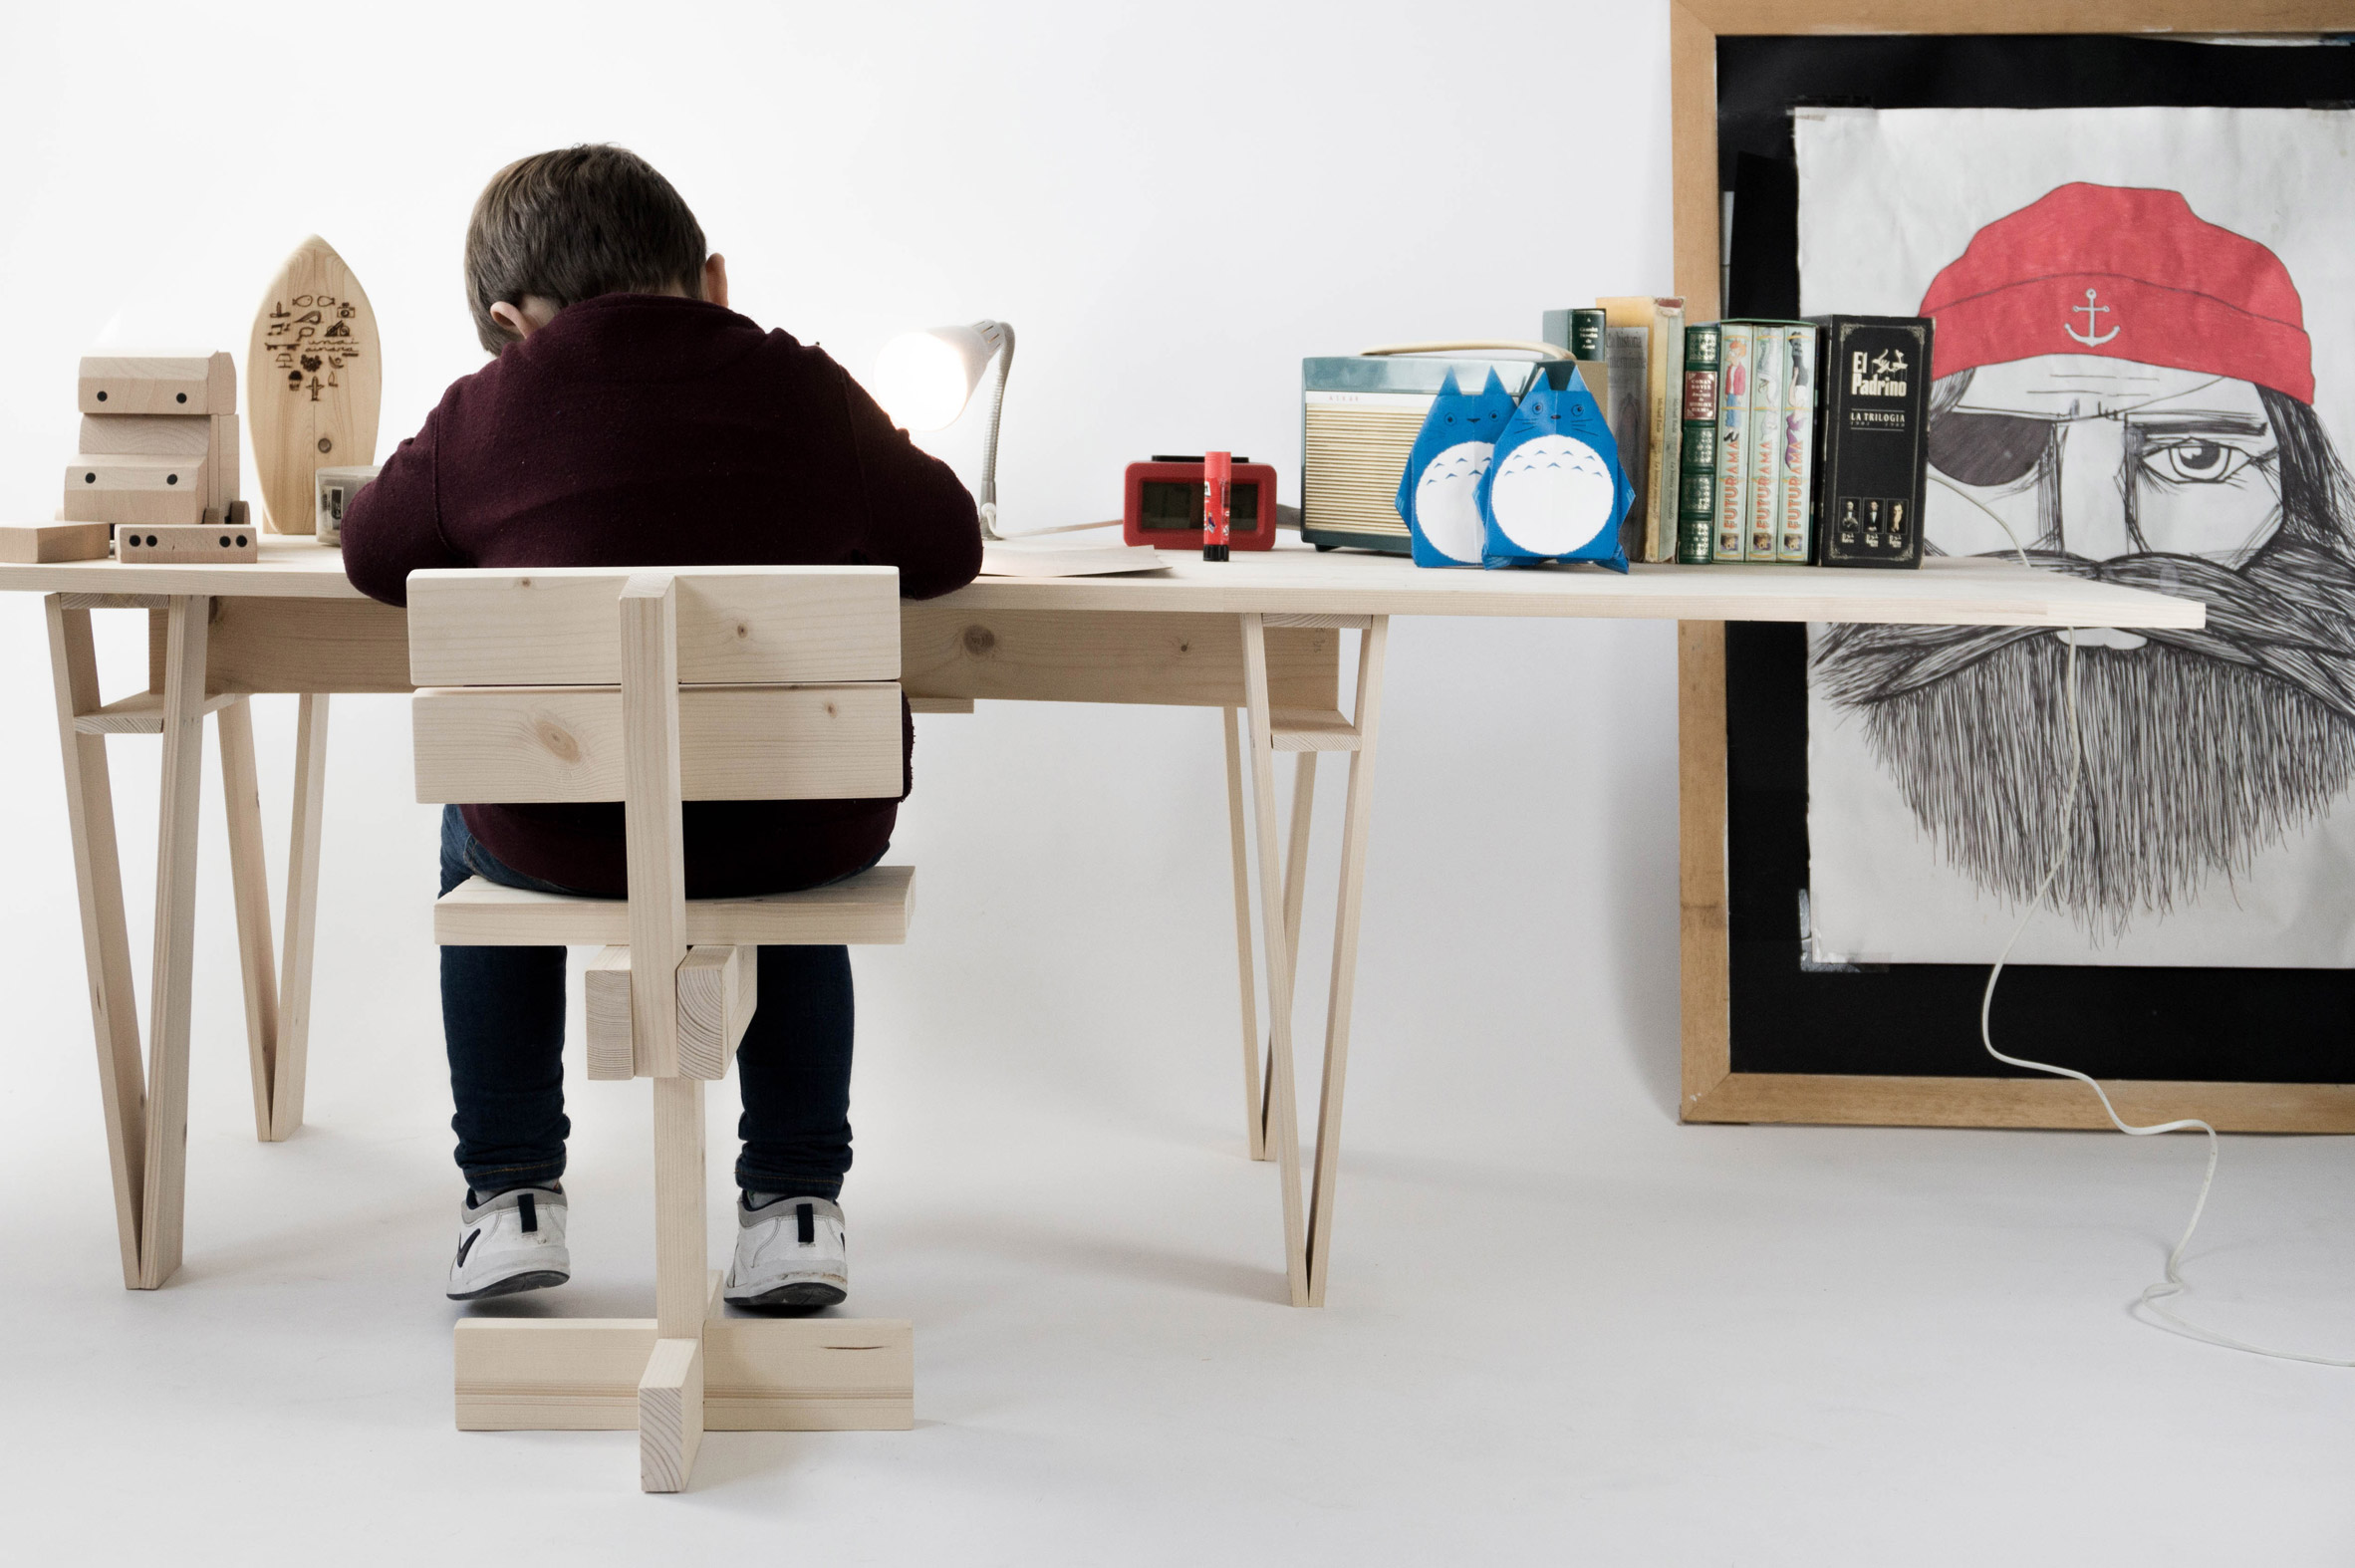 Shot of small child sitting at a wooden desk in a simple chair made of wooden planks.